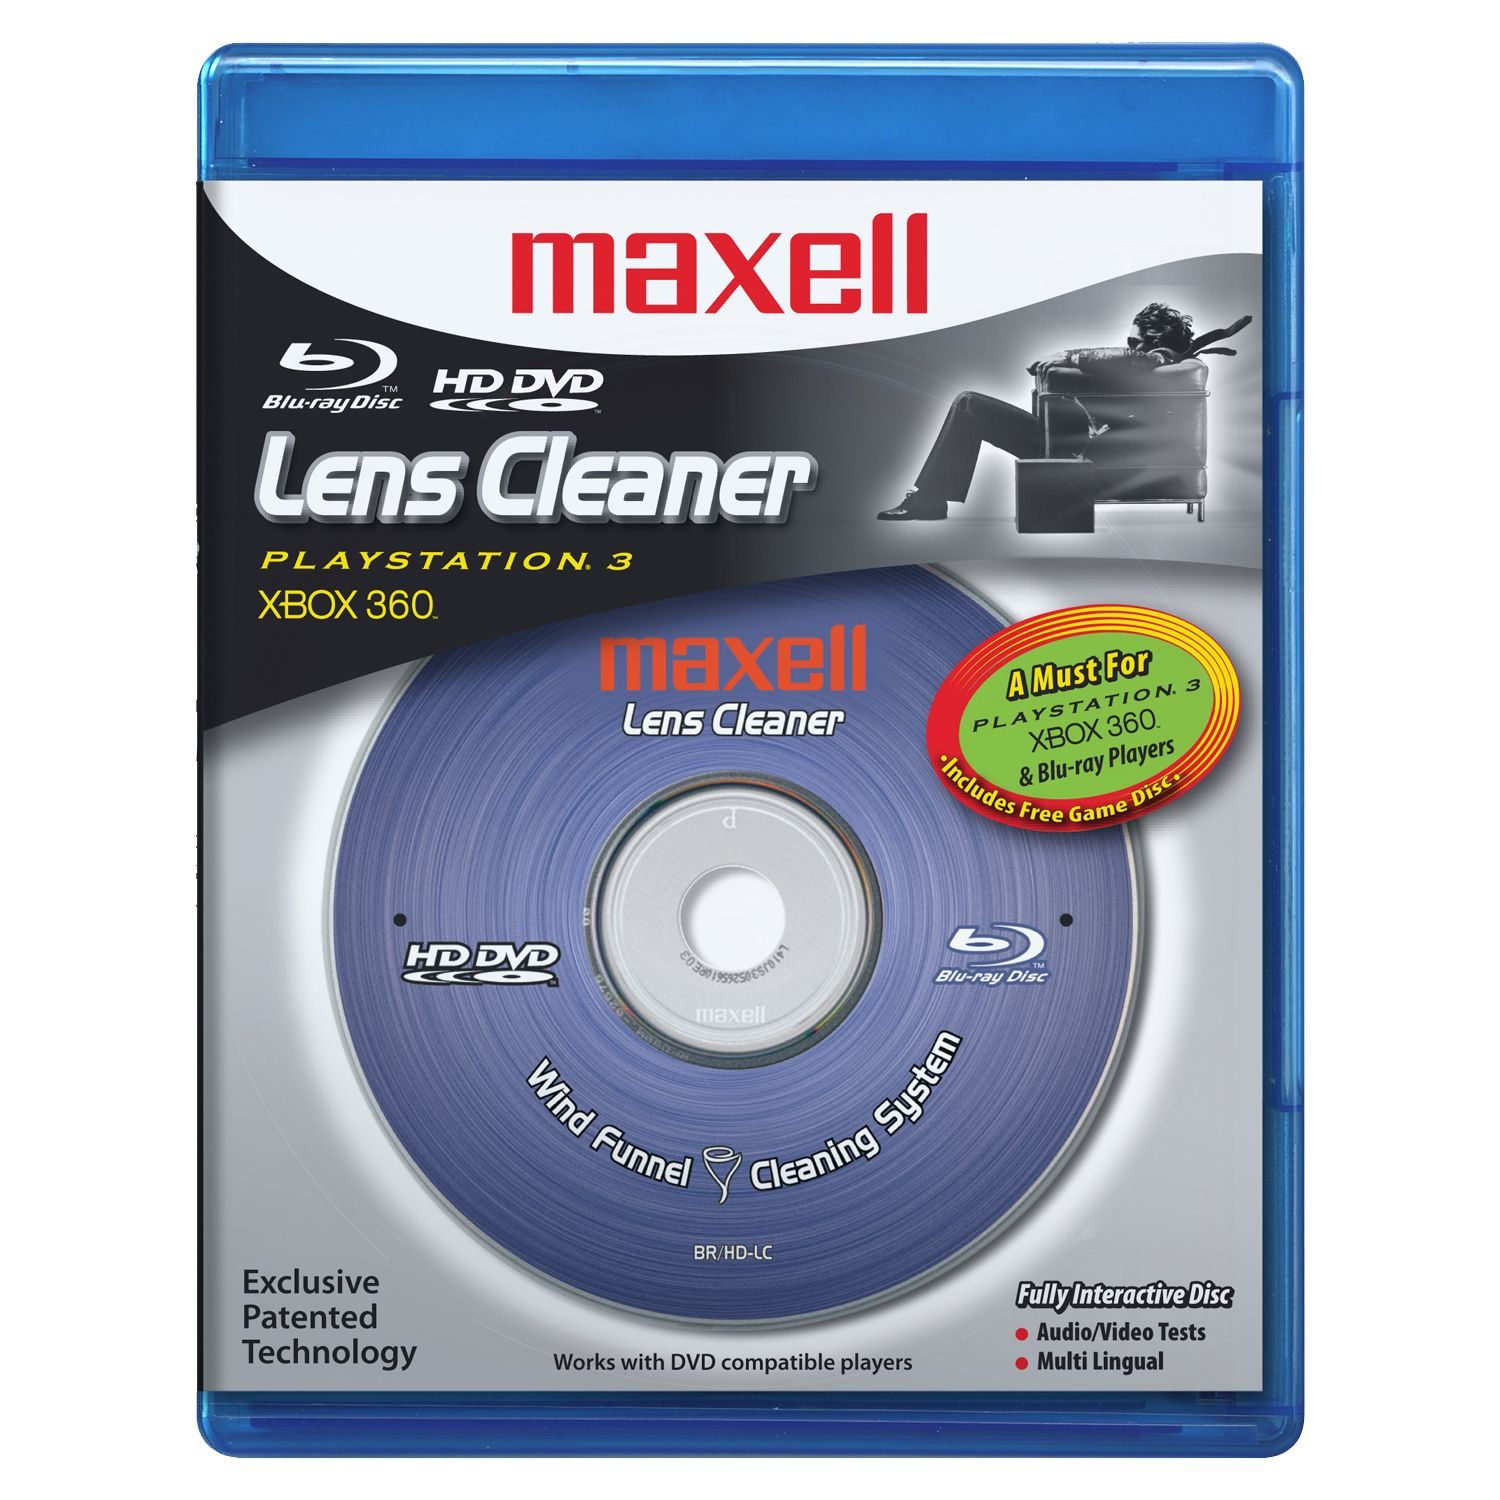 Disc Cleaning & Maintenance